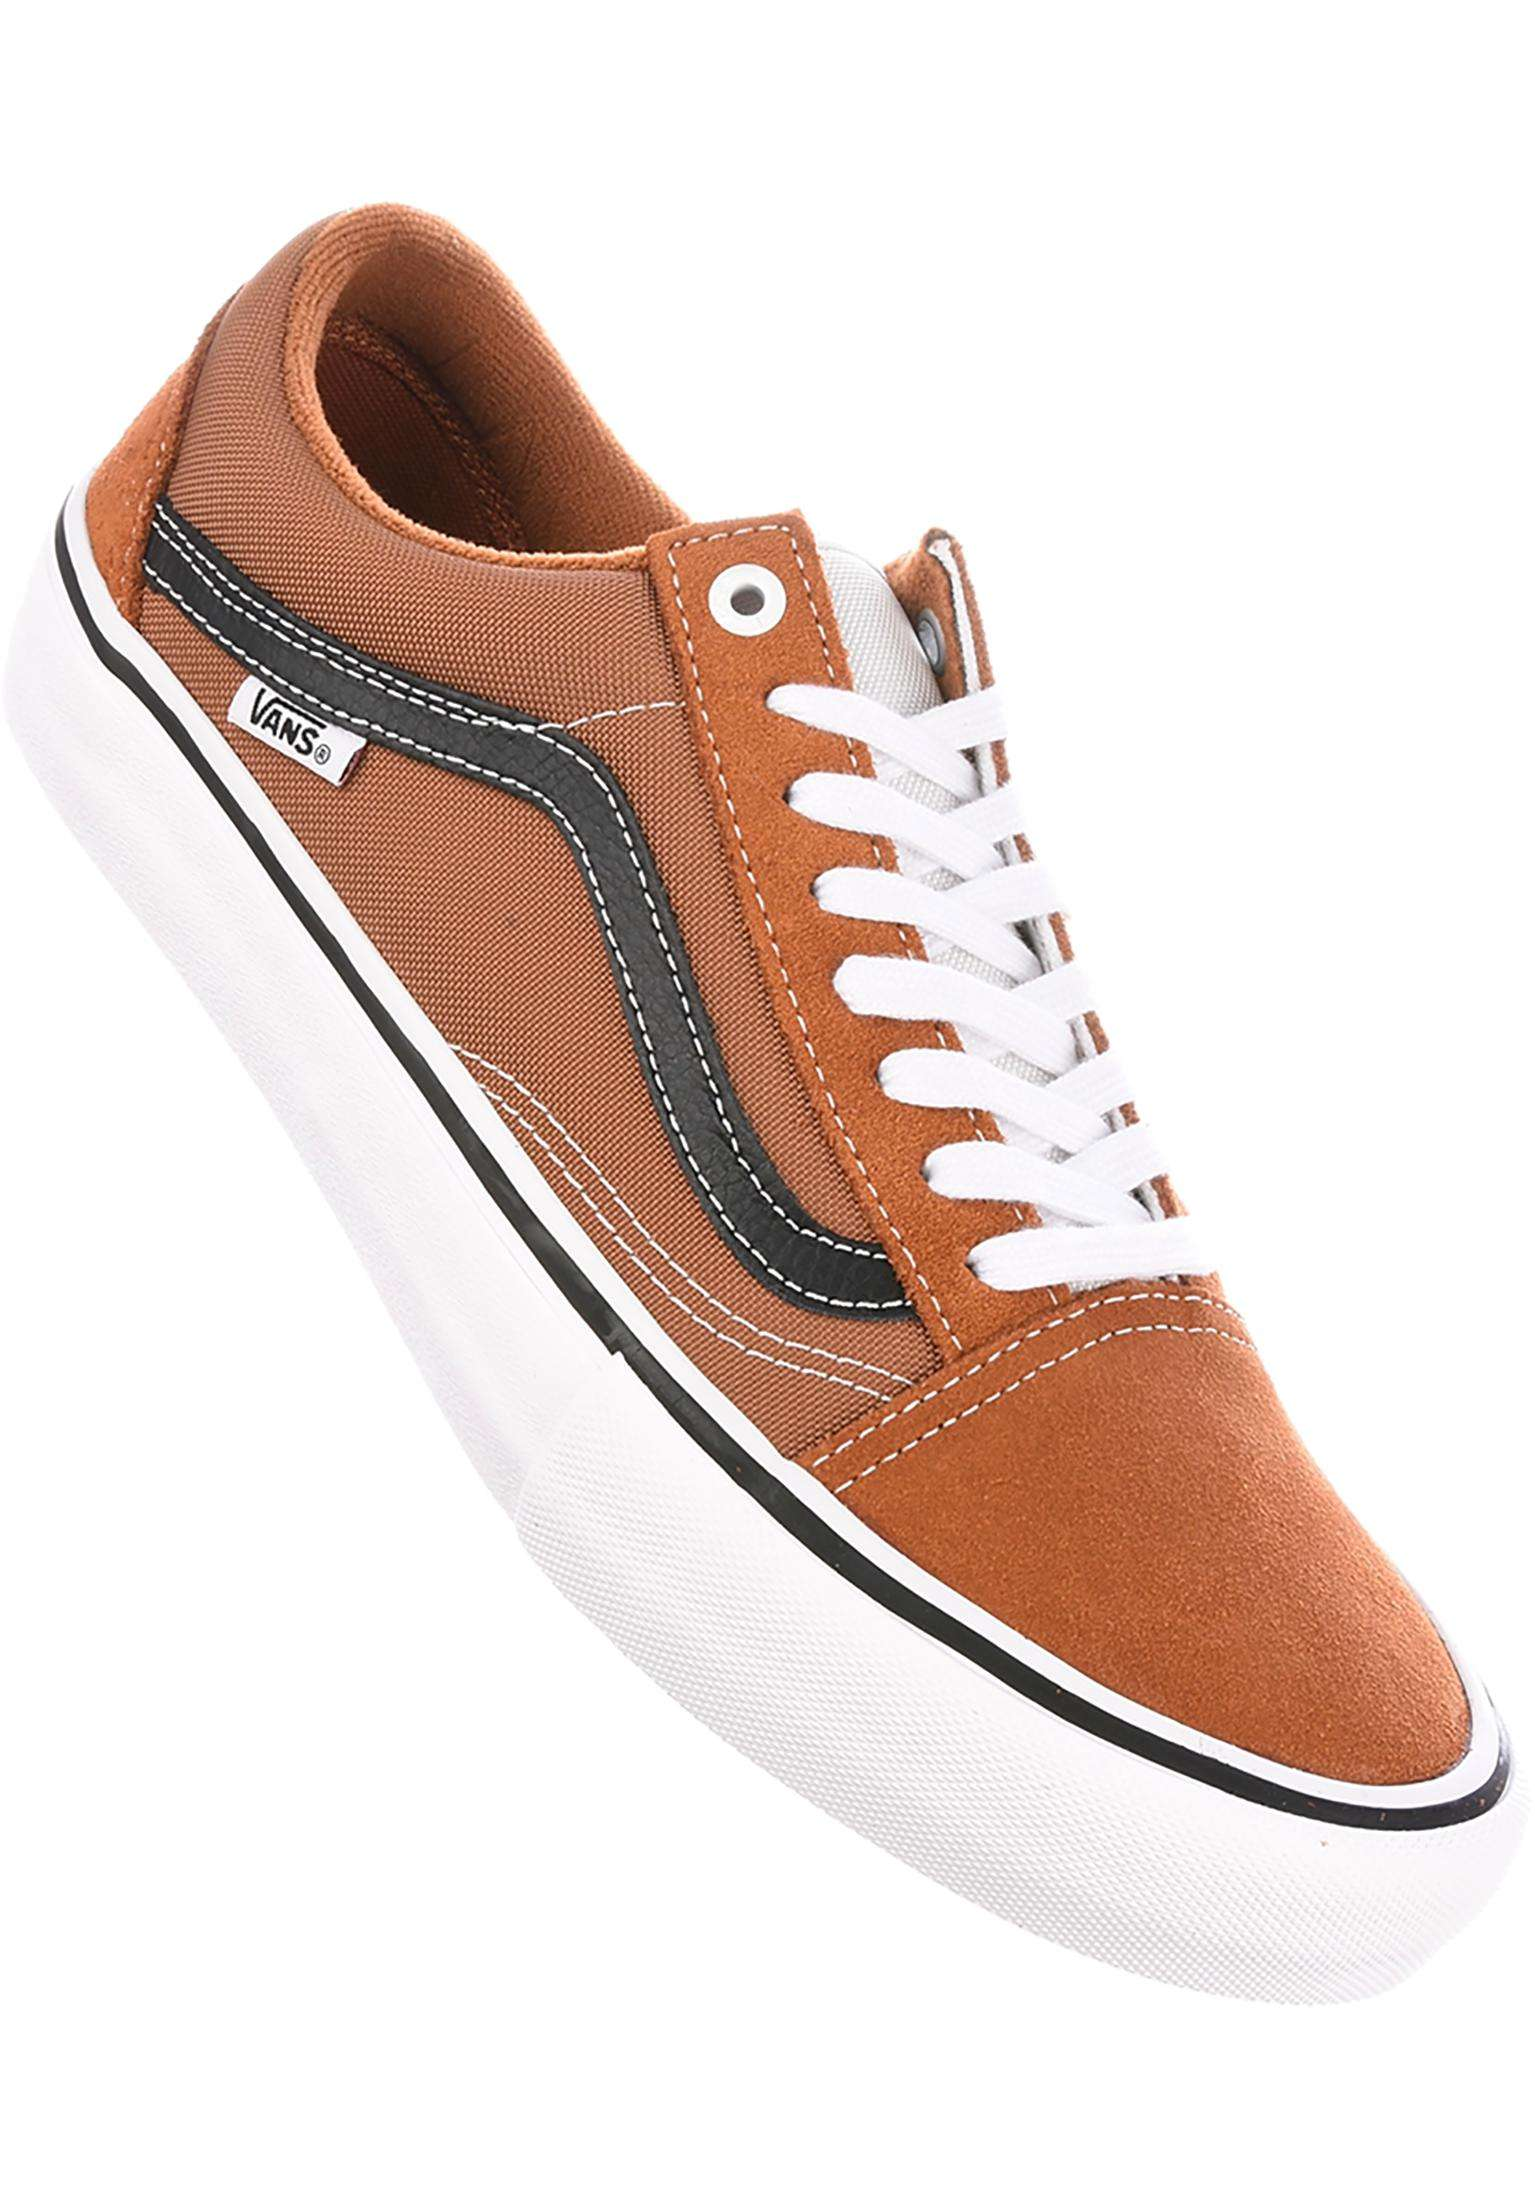 353f3d040321 Old Skool Pro Vans All Shoes in glazedginger-black for Men